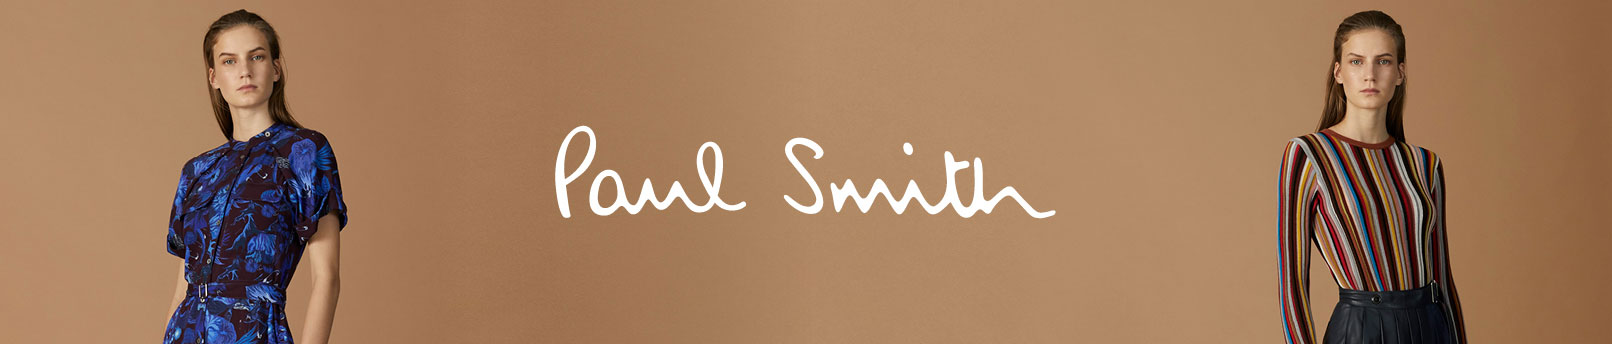 Shop Paul Smith